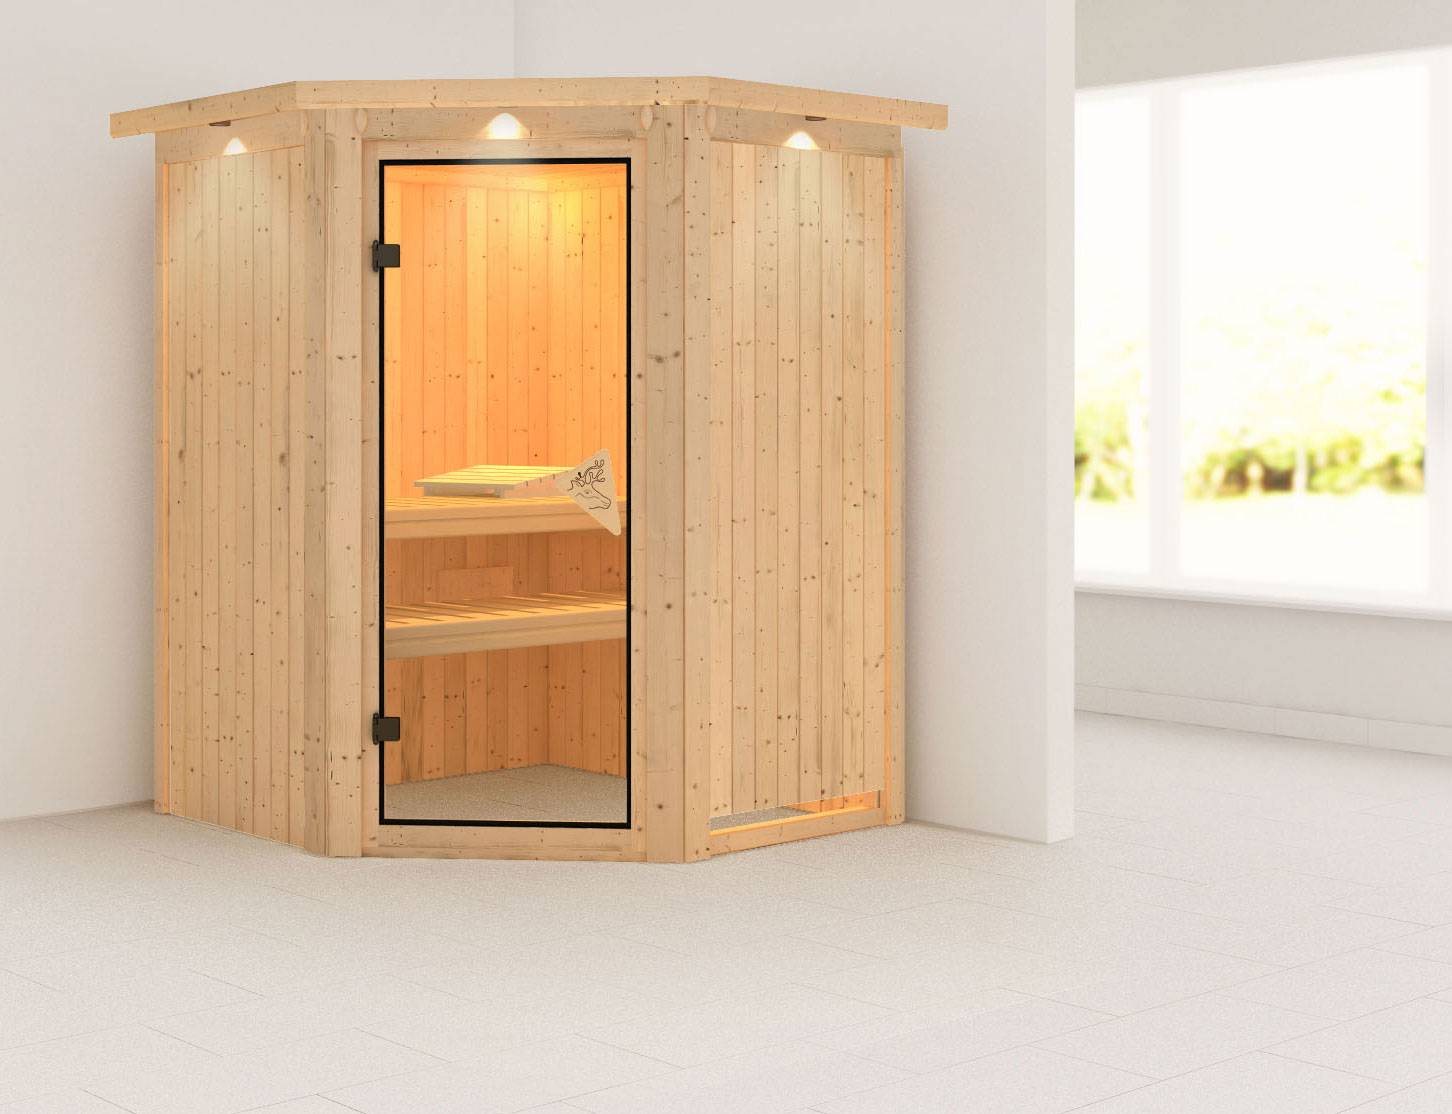 karibu sauna nanja 230 volt mit dachkranz ohne saunaofen. Black Bedroom Furniture Sets. Home Design Ideas